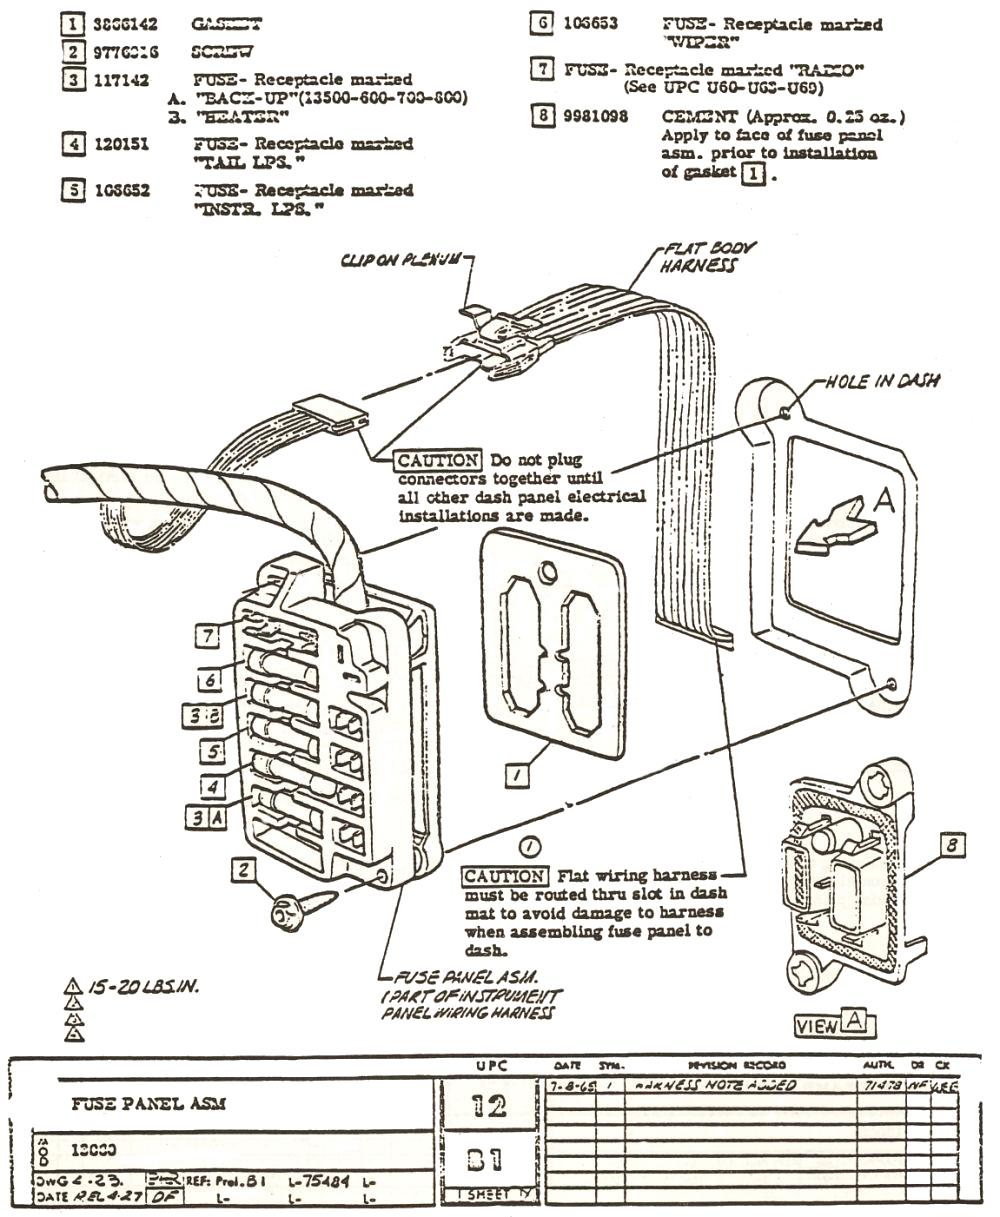 1968 Chevy Impala Fuse Box Diagram All Kind Of Wiring Diagrams Express 1500 Location Diy Enthusiasts Images Gallery